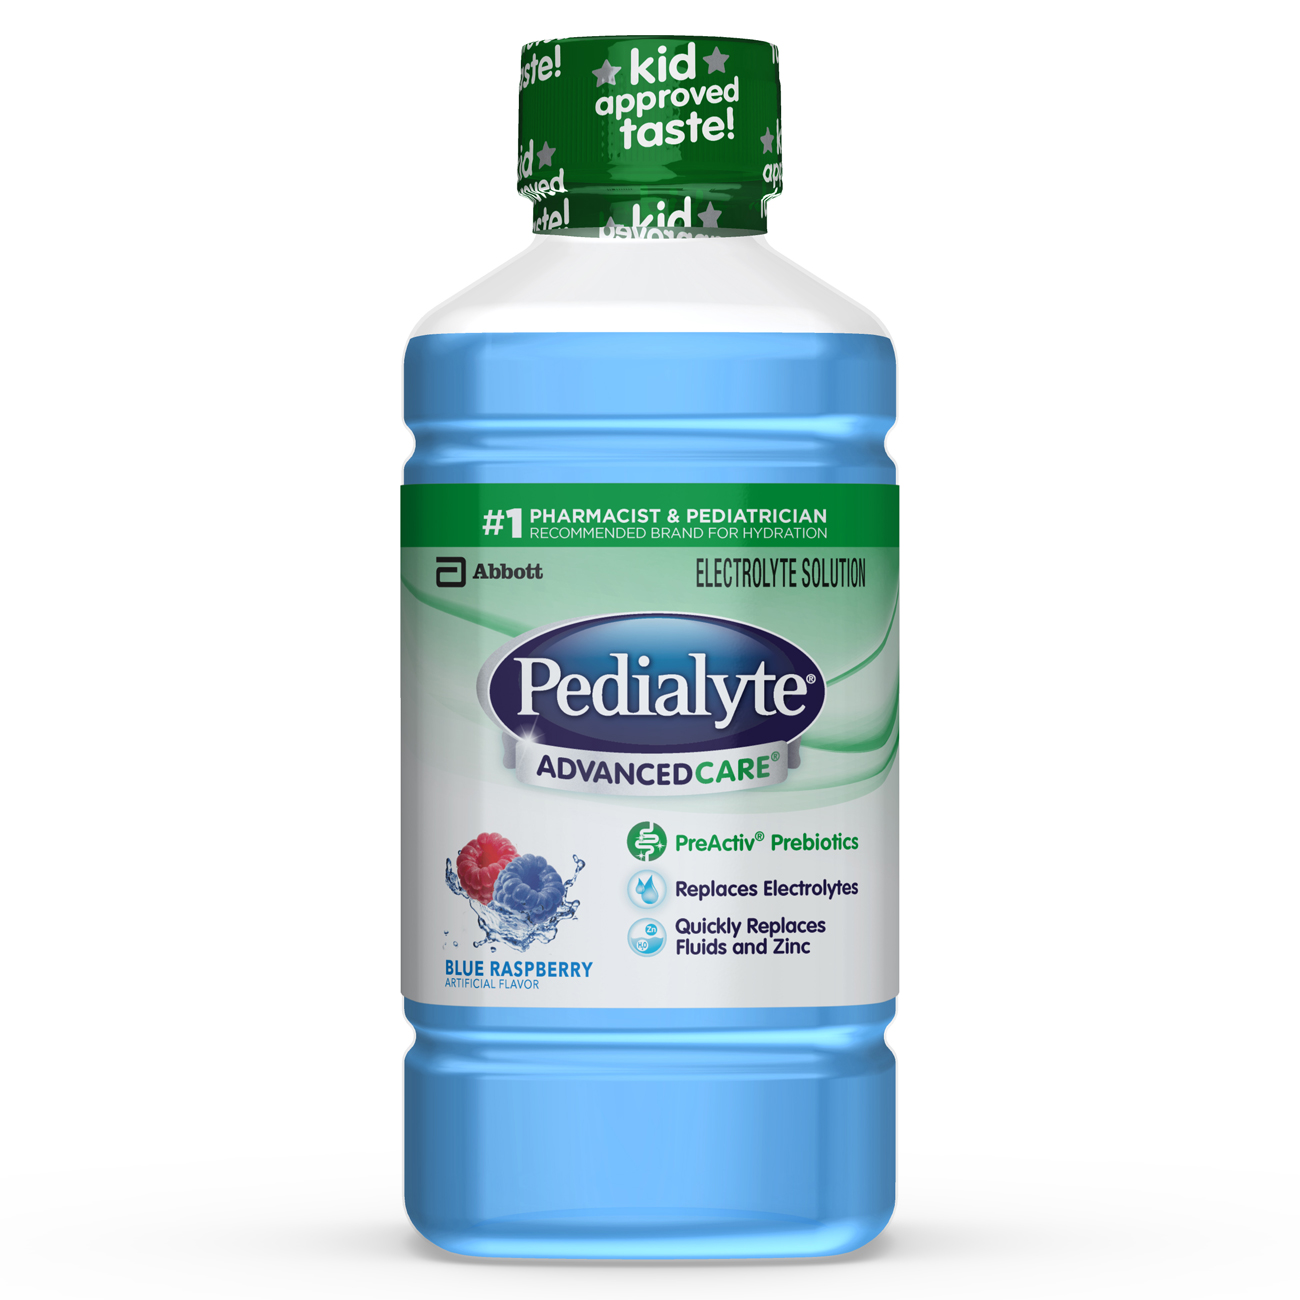 Pedialyte AdvancedCare Electrolyte Drink w/ Prebiotics (8 Count) Blue Raspberry, 35 fl oz